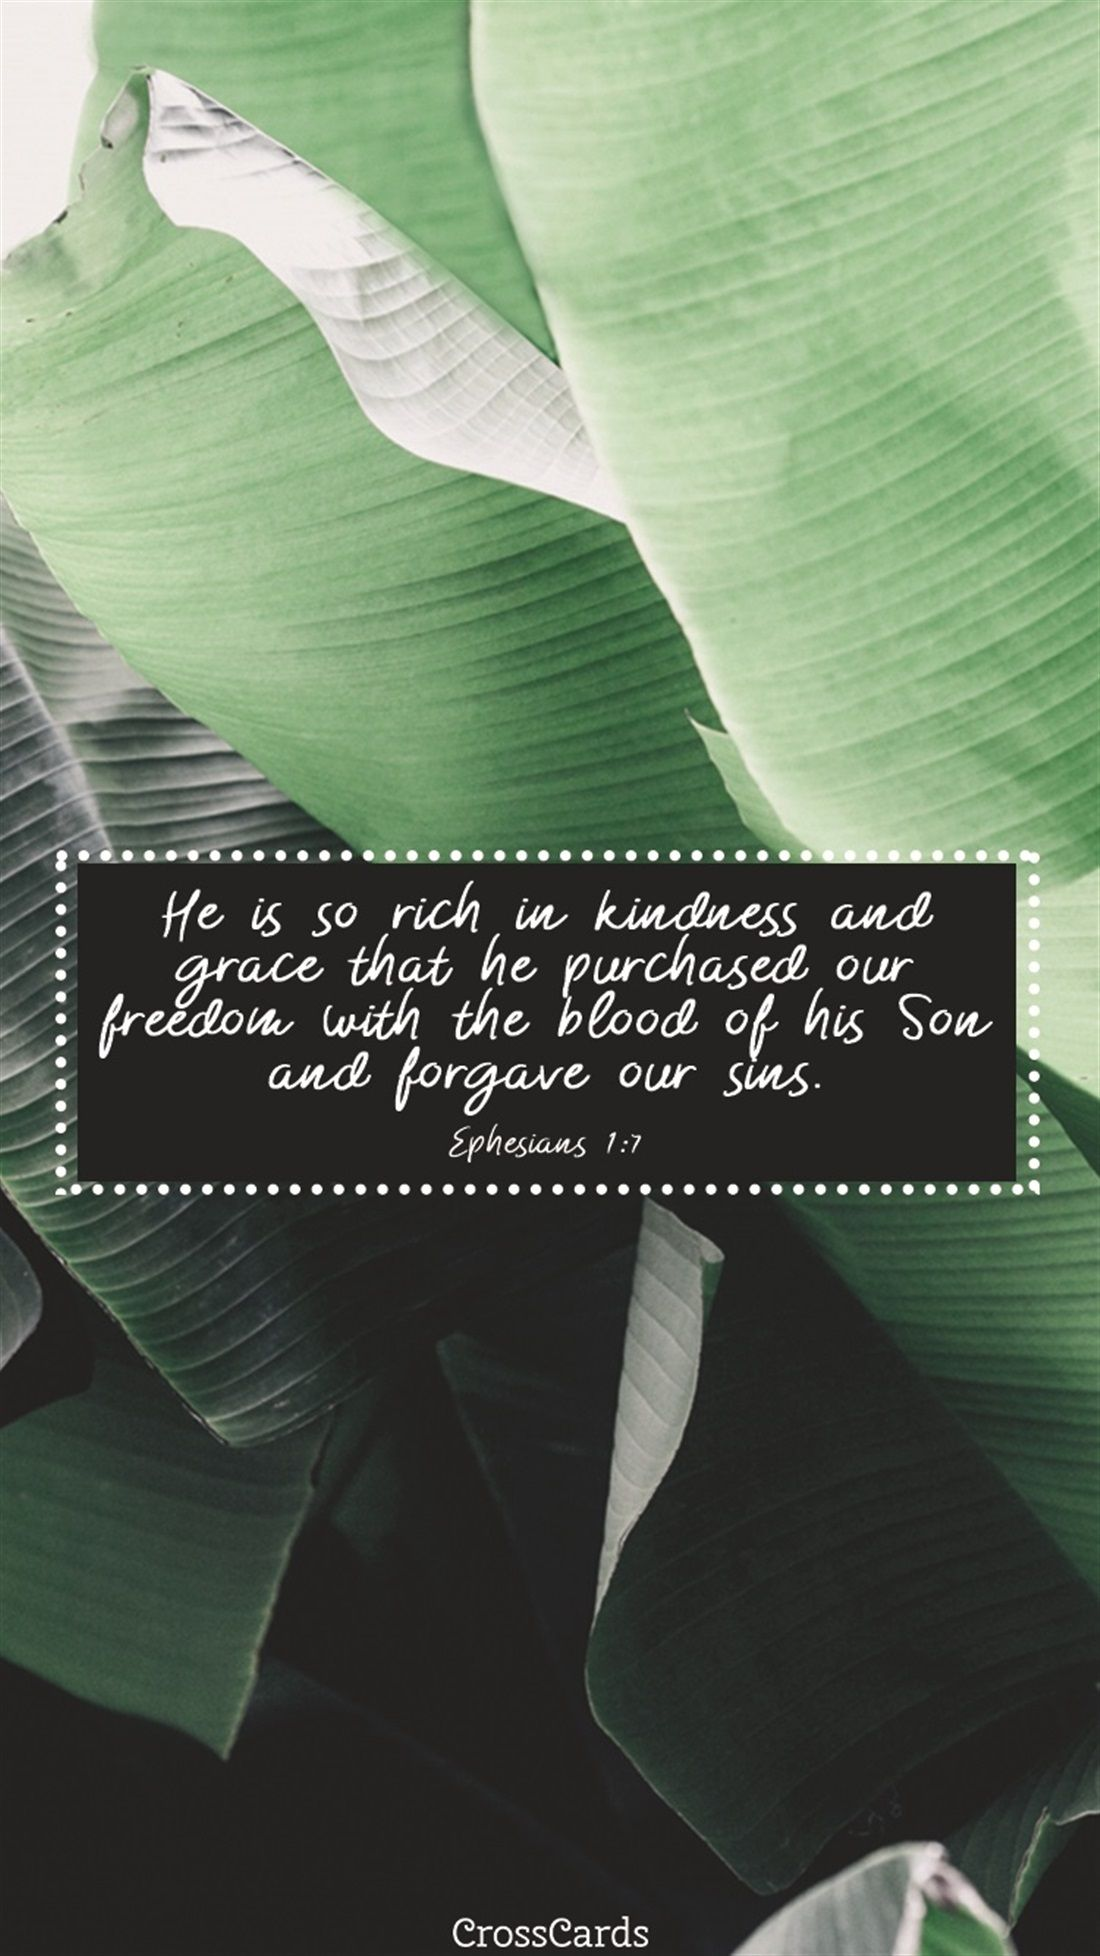 Ephesians 1 7 Phone Wallpaper And Mobile Background Ephesians Ephesians 1 Worship Wallpaper